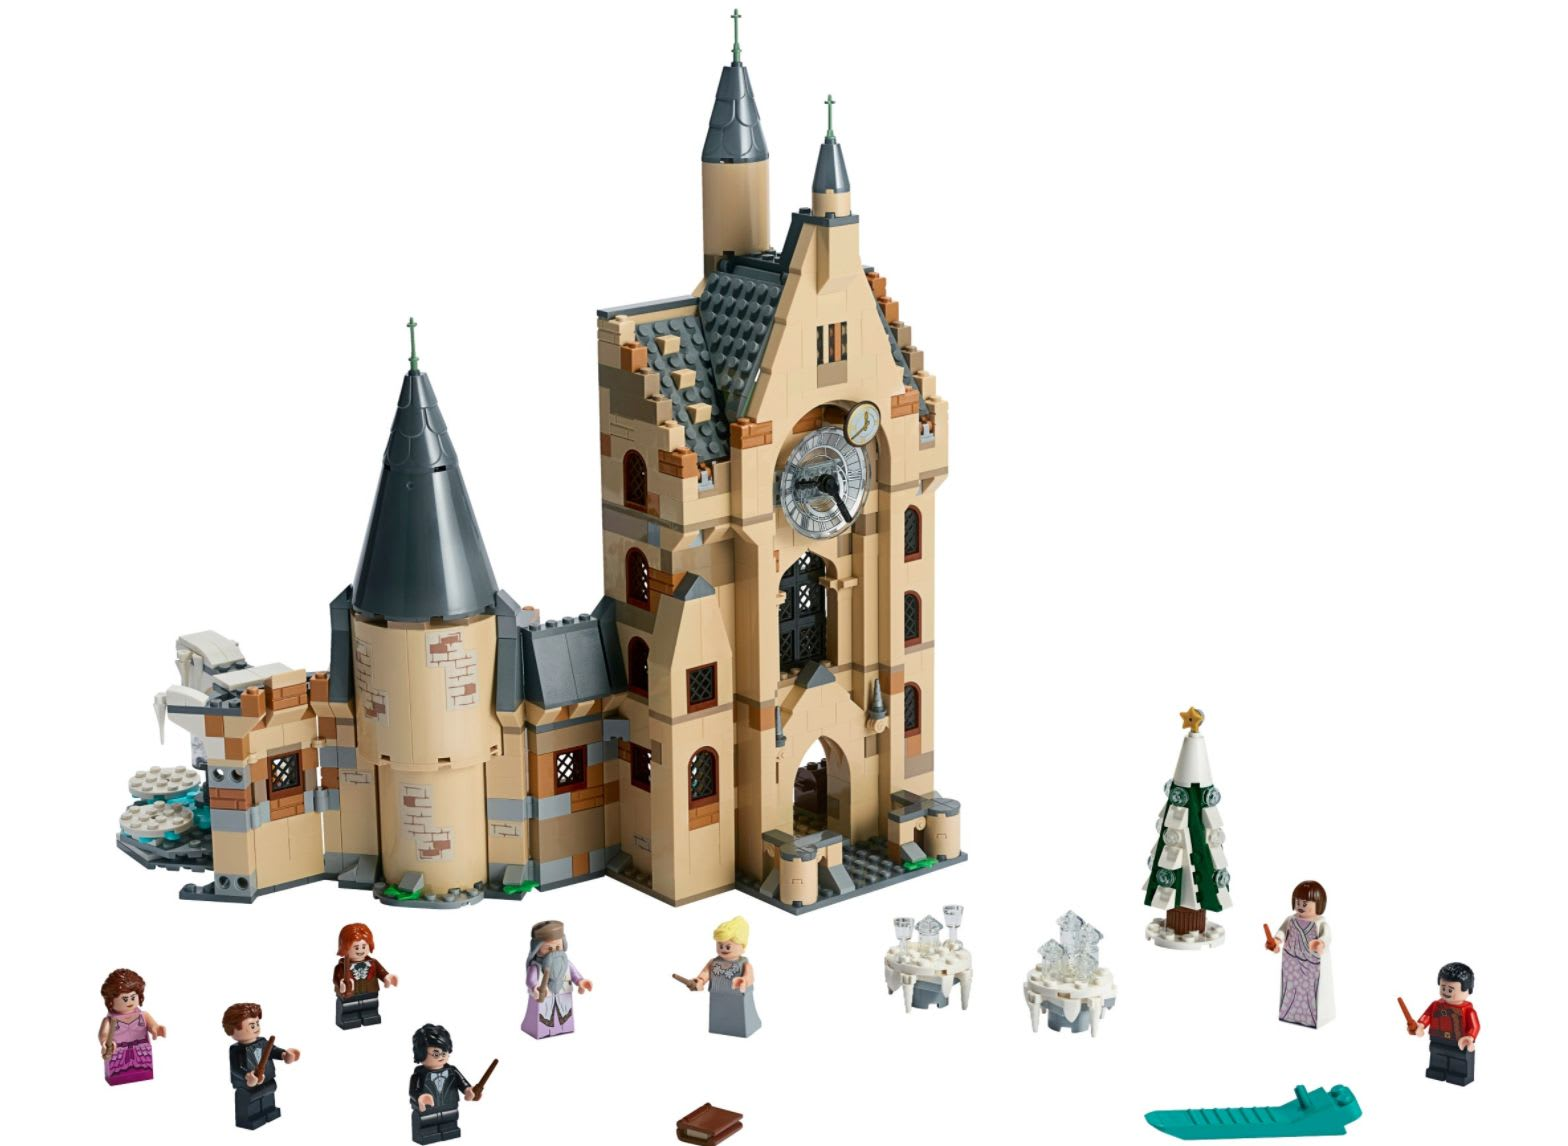 Discover the LEGO Harry Potter Clock Tower set at LEGO.